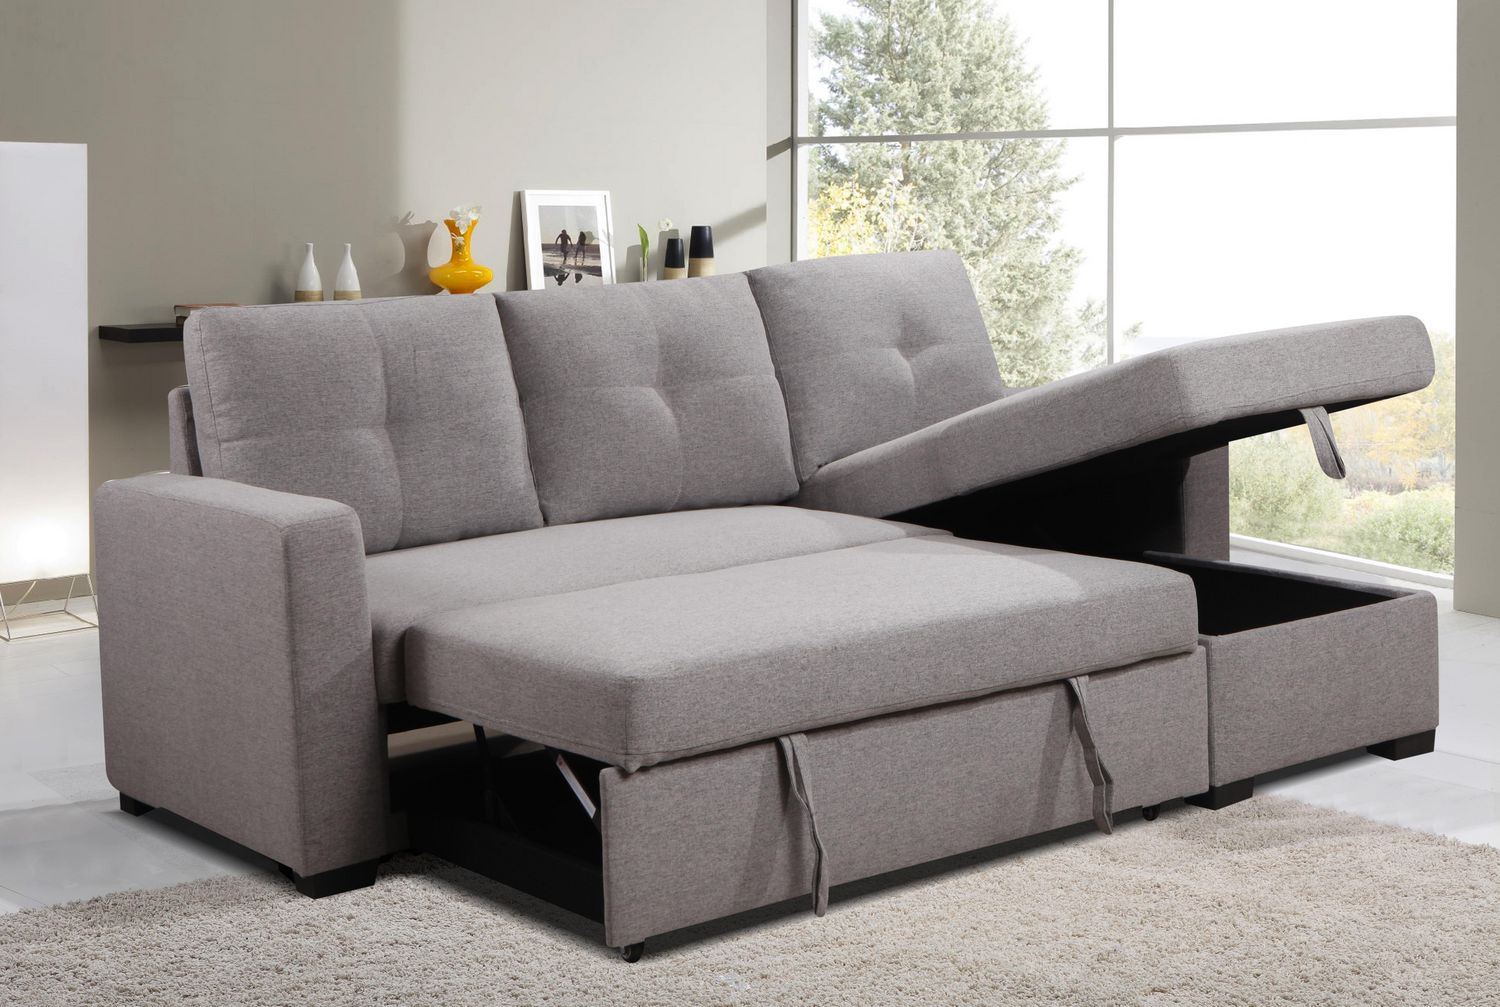 K Living Victor Linen Fabric Sectional Sofa Bed In Grey With Tufted Back Style Walmart Canada